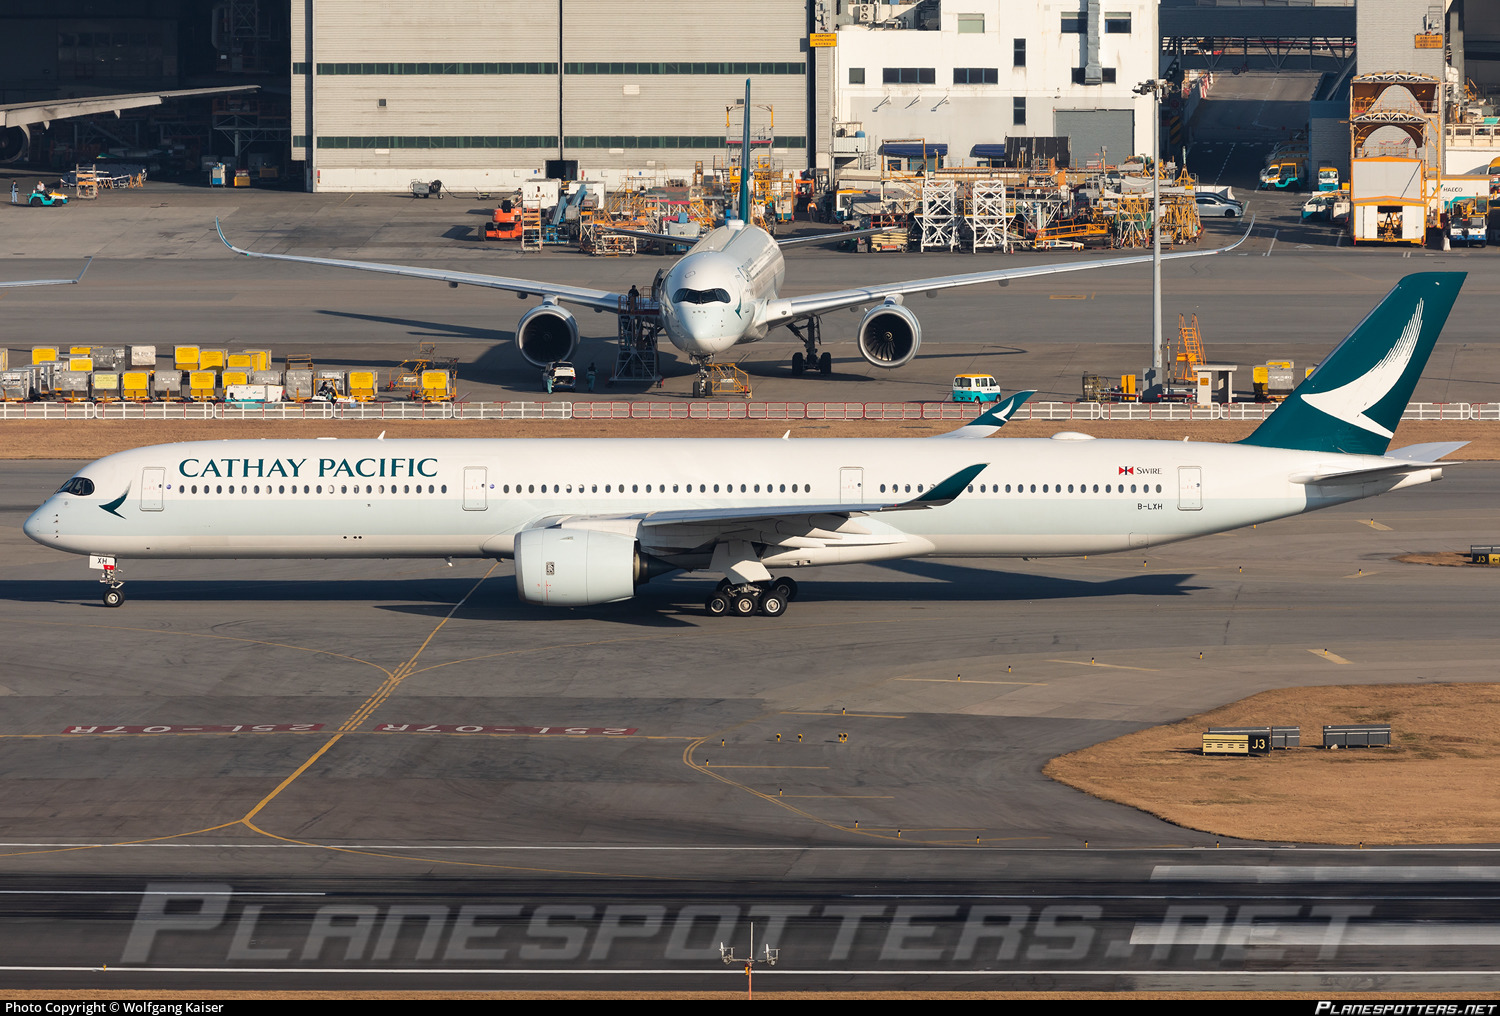 B-LXH Cathay Pacific Airbus A350-1041 Photo by Wolfgang Kaiser | ID 1107807 | Planespotters.net